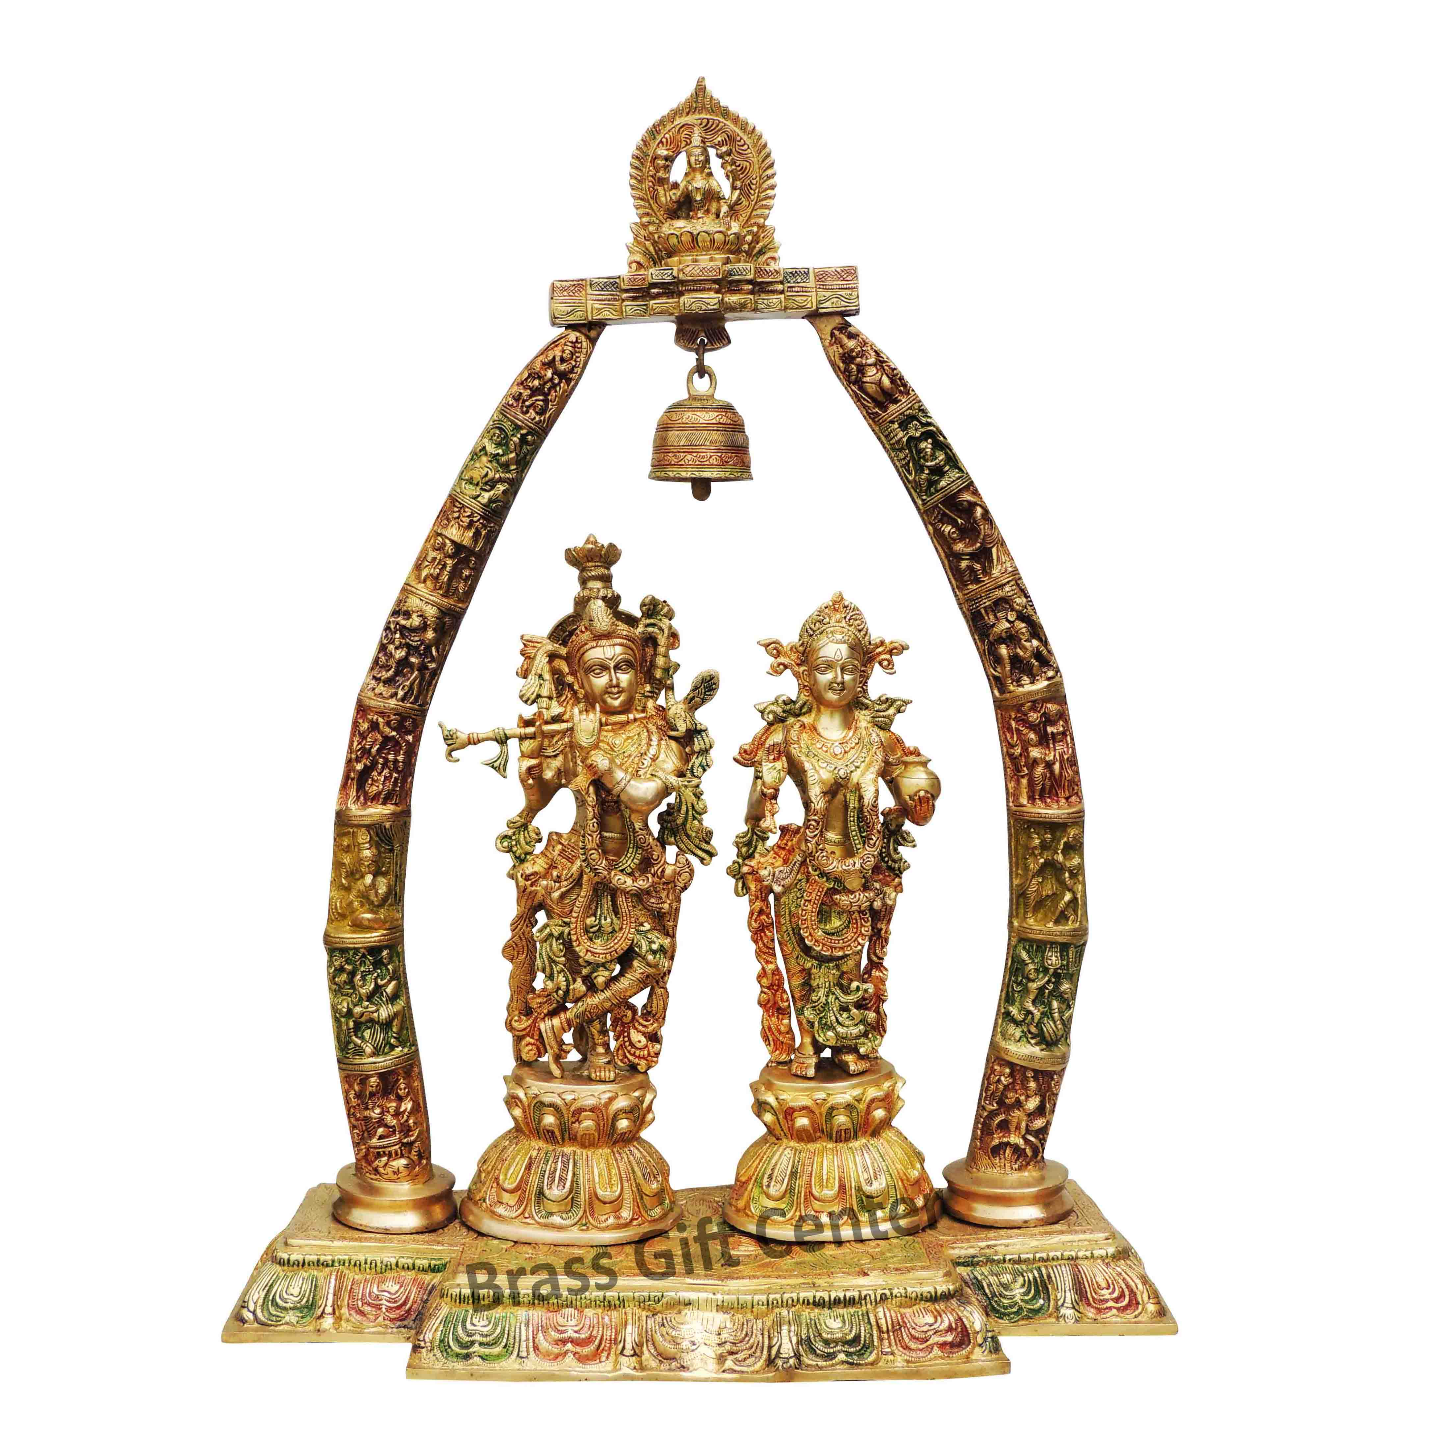 Brass Radha Krishna Dharbar In Multicolour lacquer Finish - 24.5*9.8*31.7 Inch  (BS301 B)